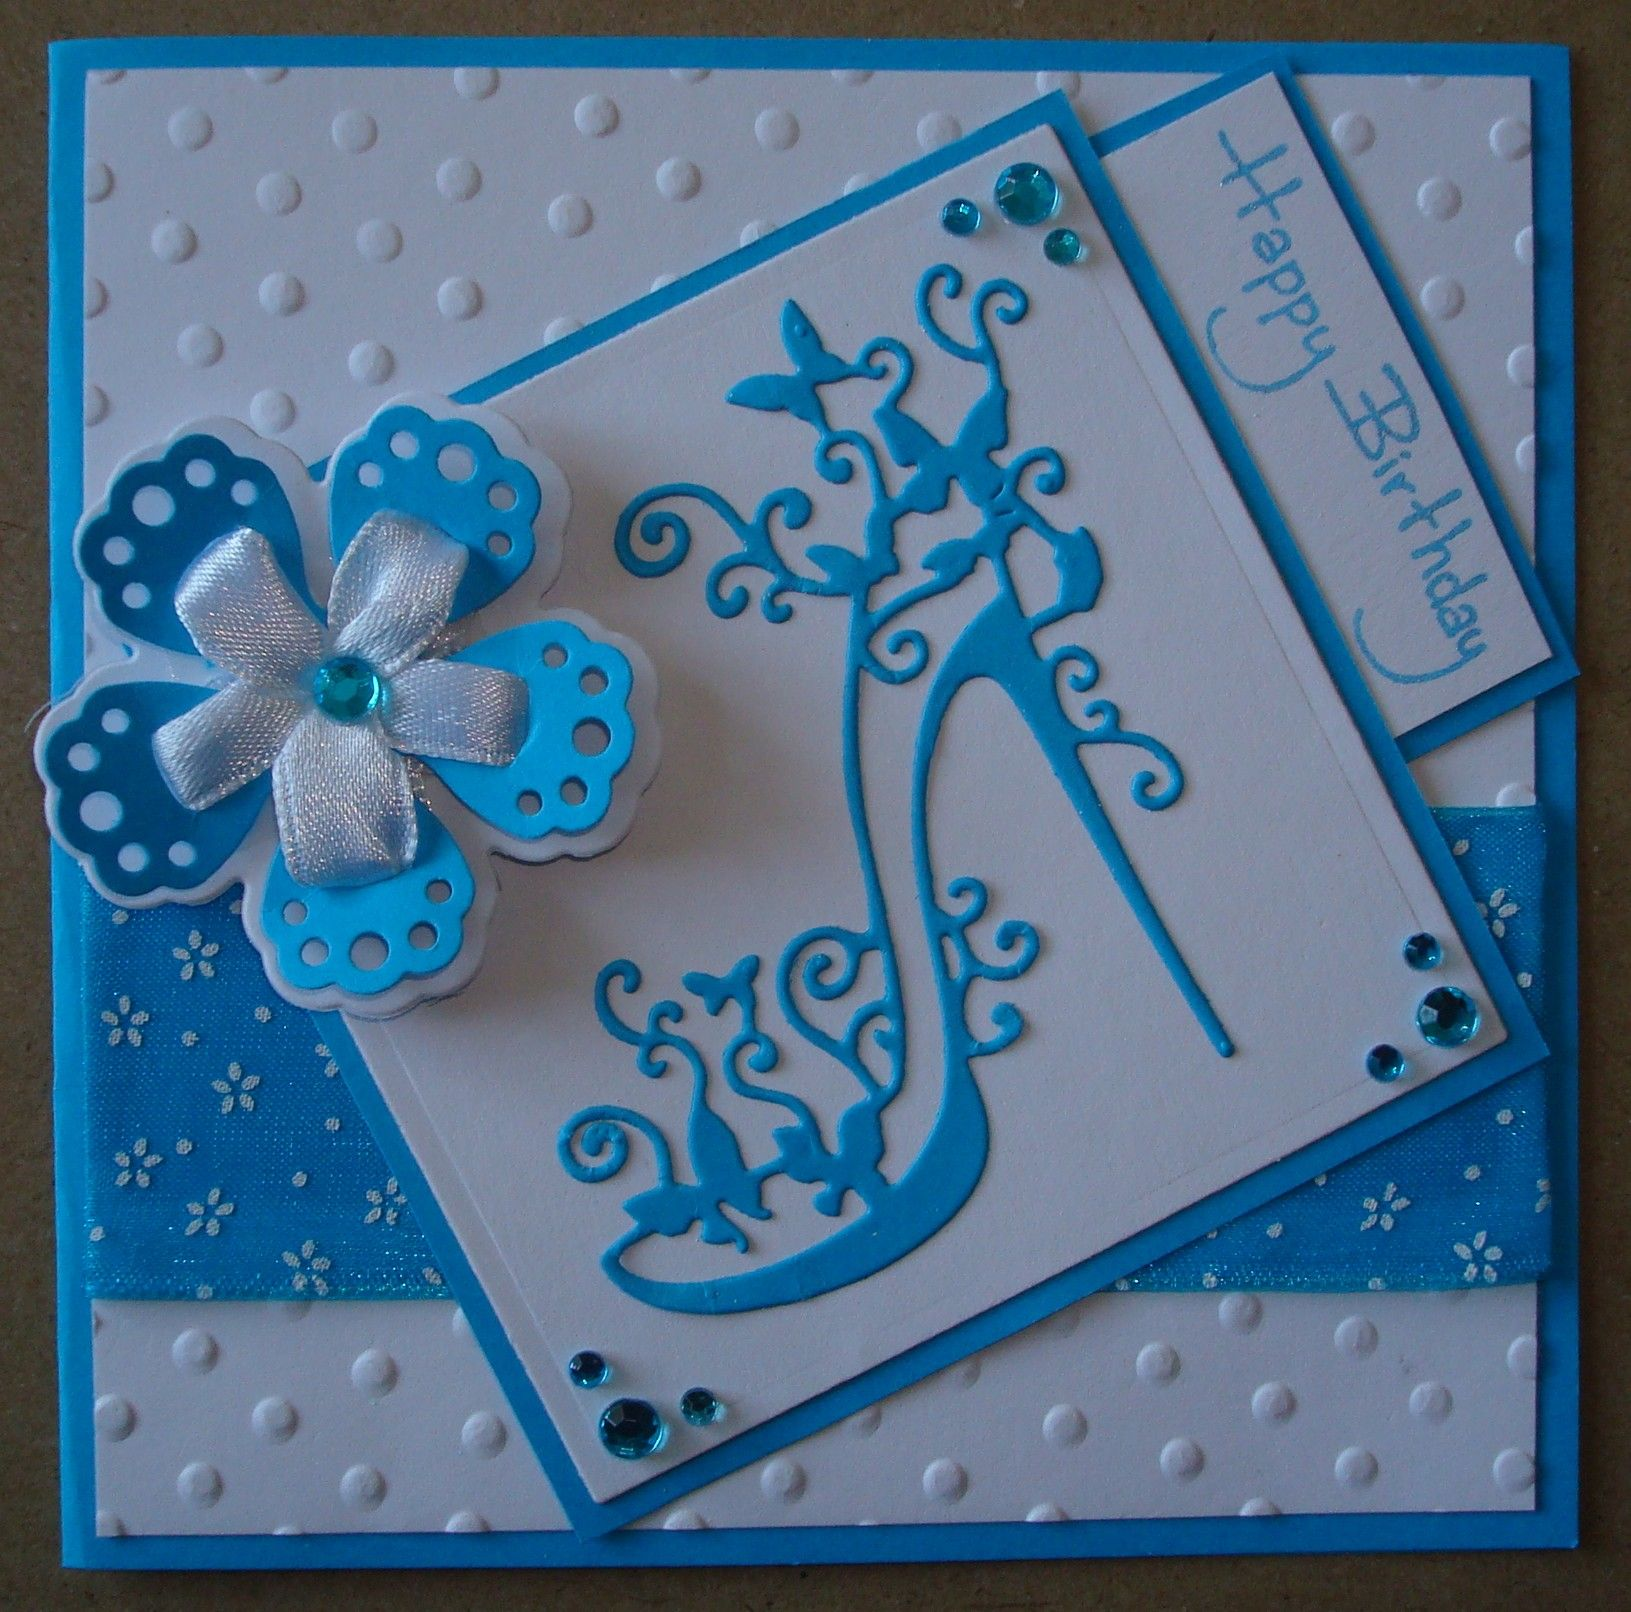 Ordinary Card Making Ideas Using Tattered Lace Dies Part - 8: Hand Made Birthday Card Using Tattered Lace Shoe Die And Ribbon Flower Die